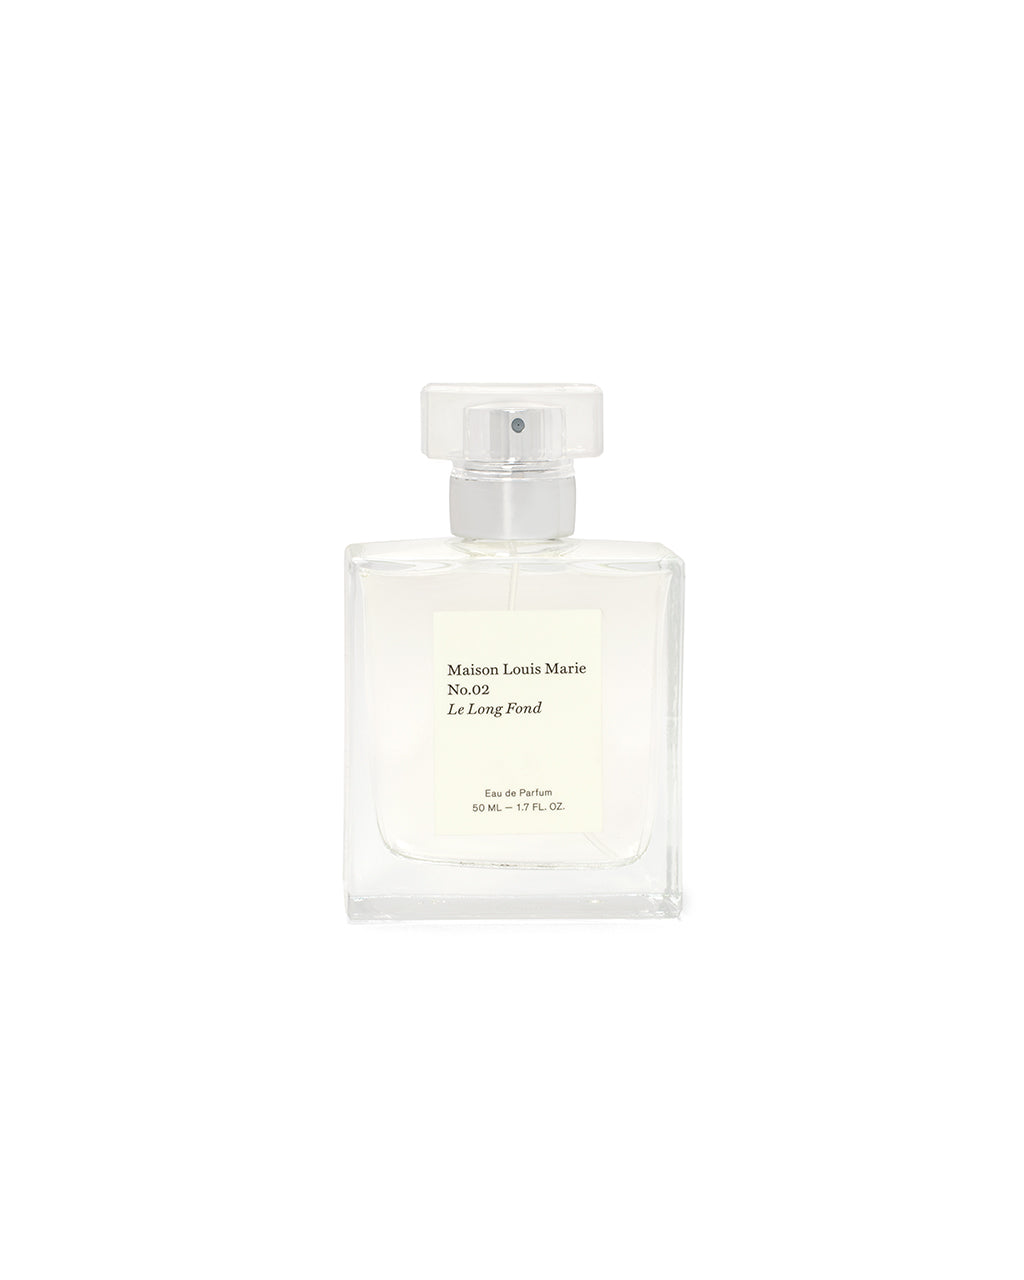 The No. 2 - Le Long Fond by Maison Louie Marie comes in a clear glass mist bottle.